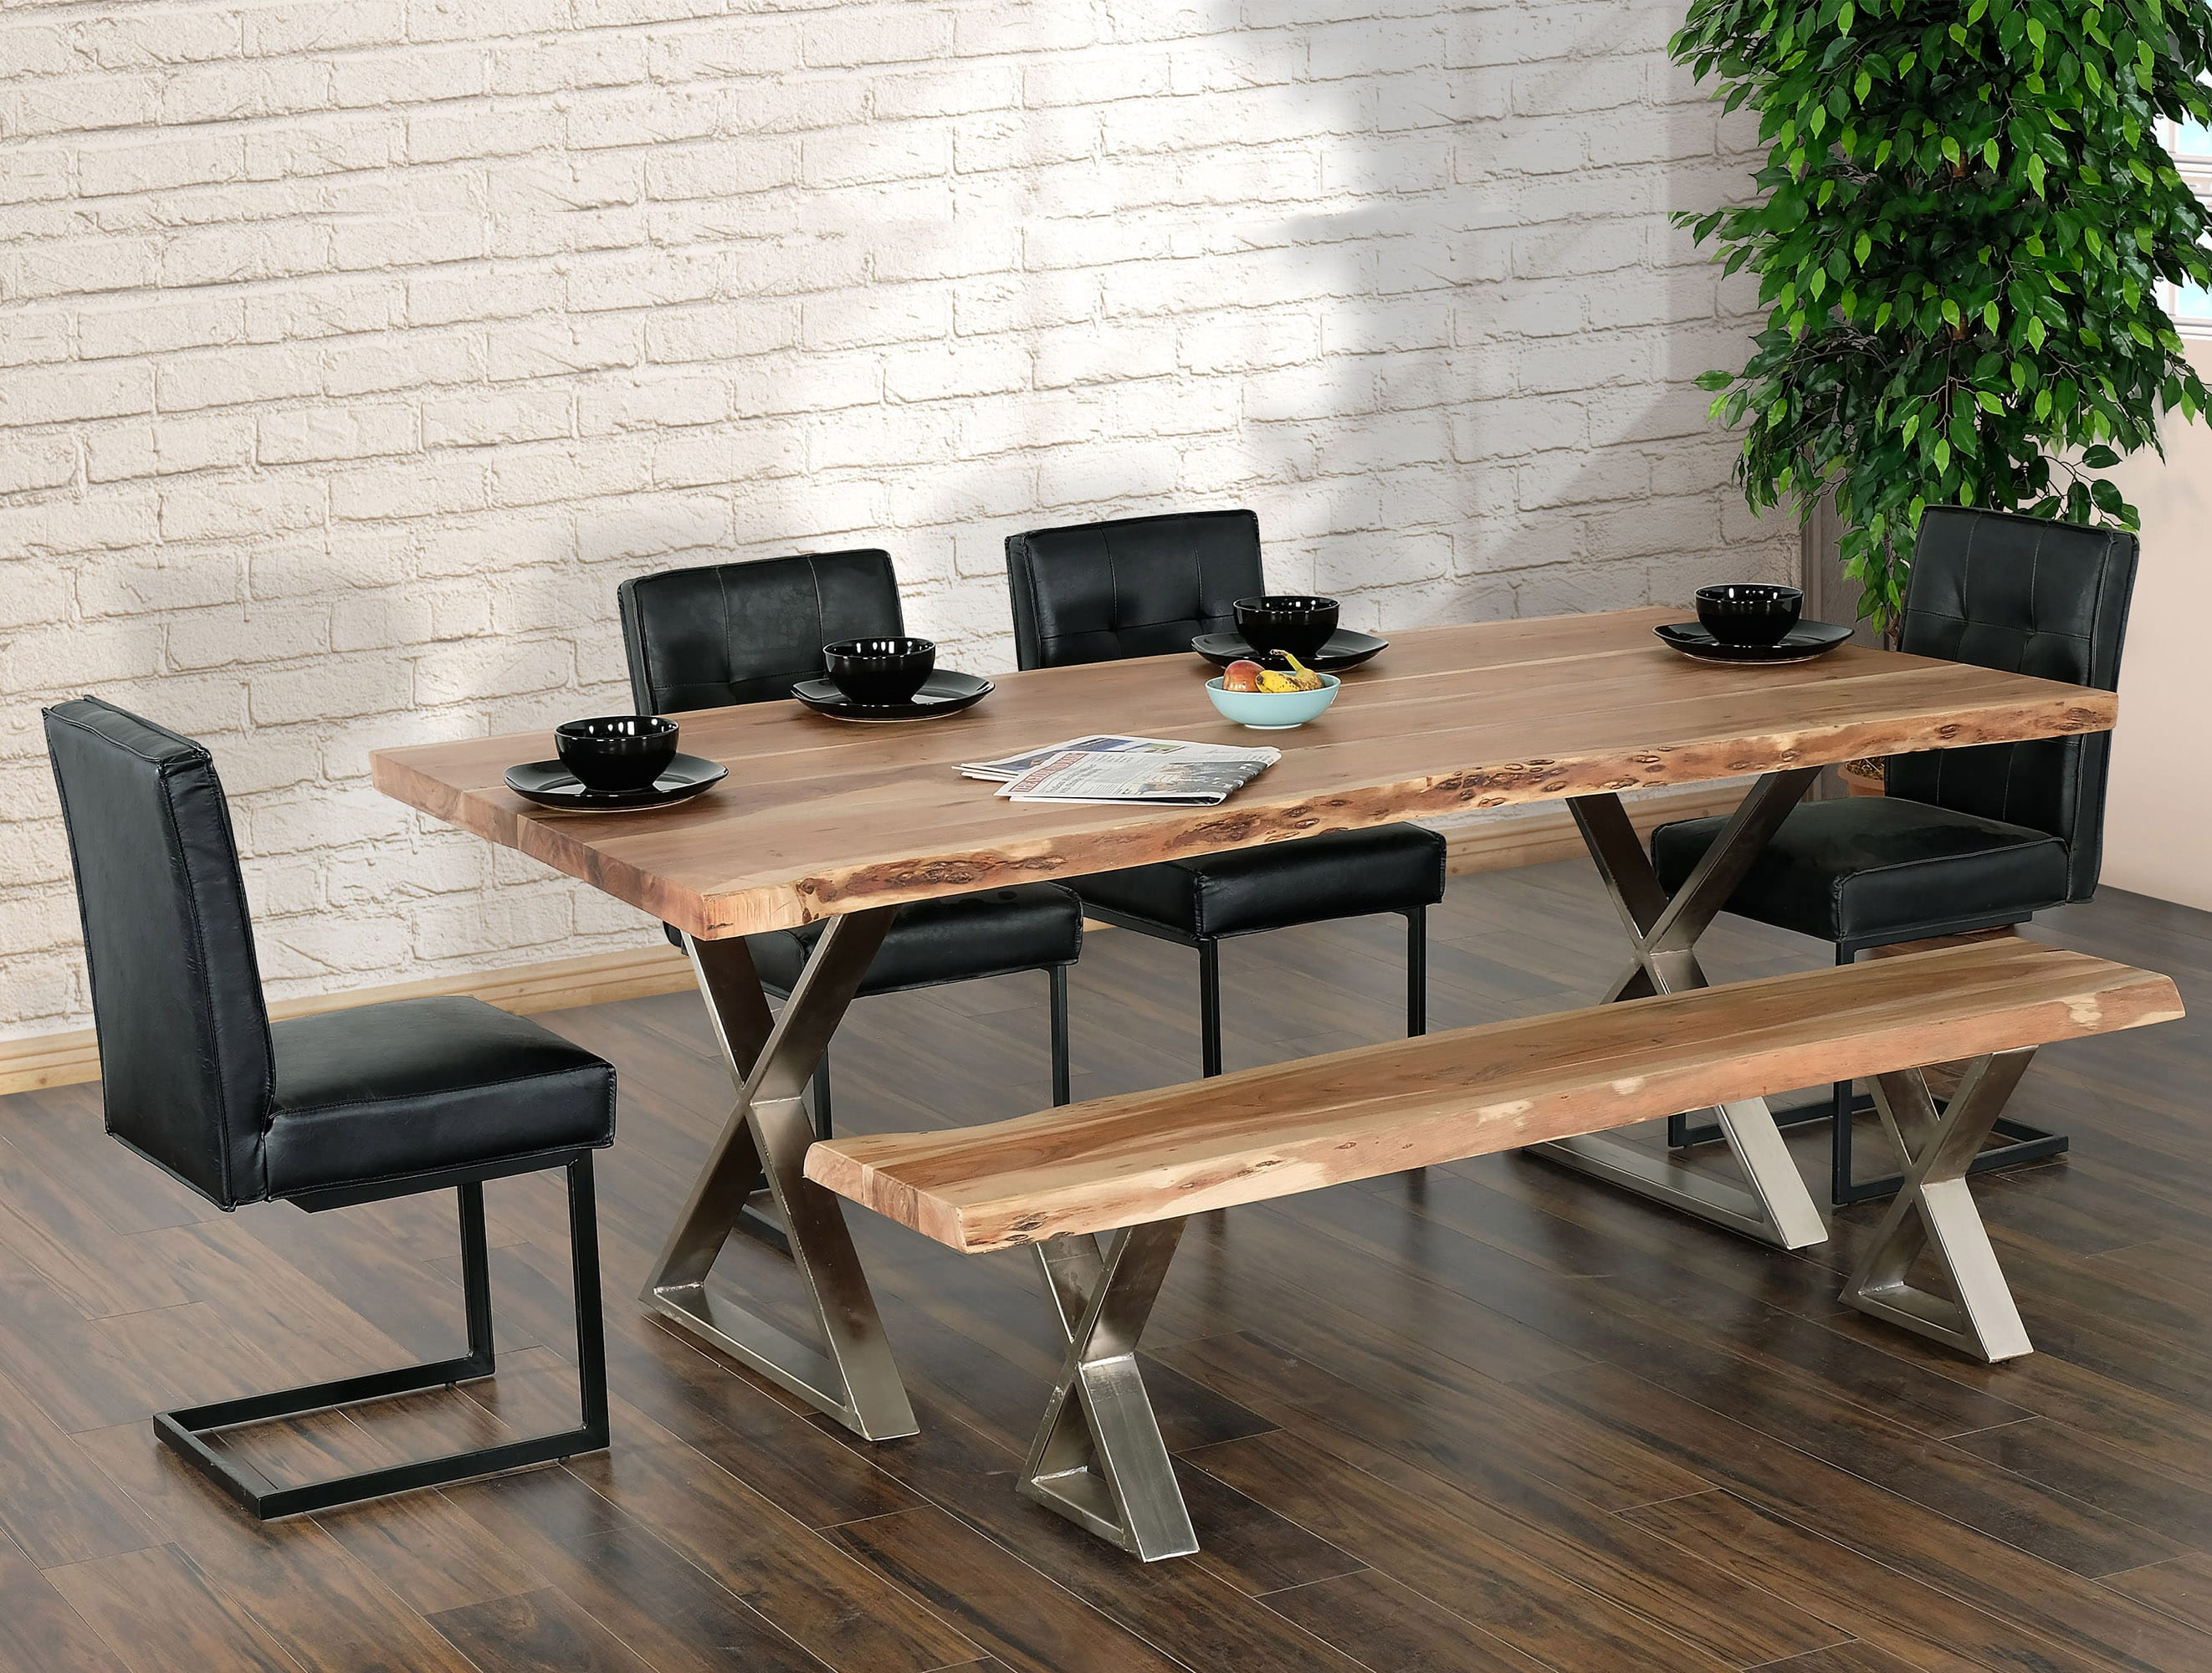 Coastline 9 Natural Wood Dining Table by Primo